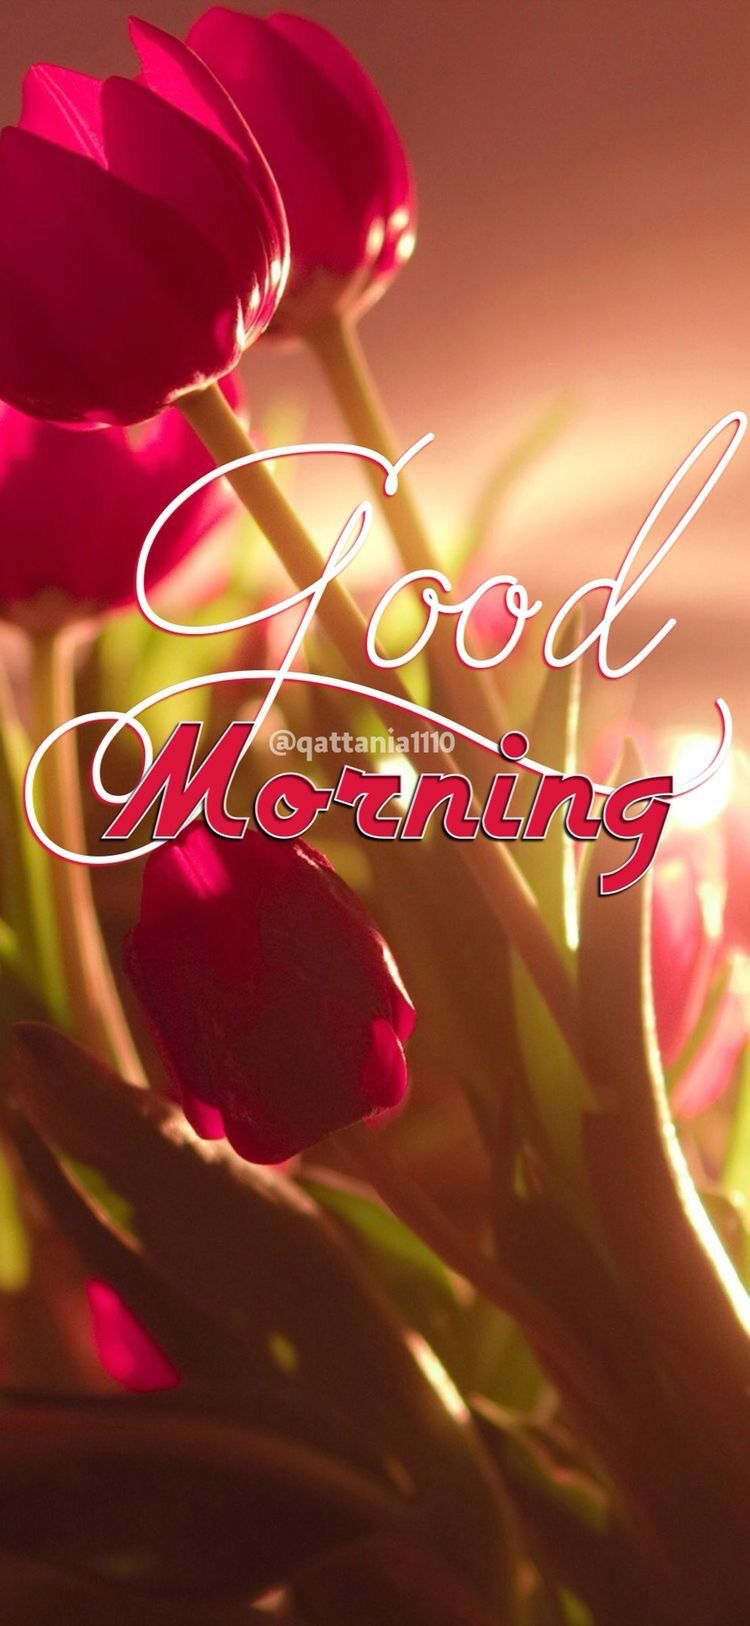 Good Morninghave A Lovely Day Daily Greetings Pinterest